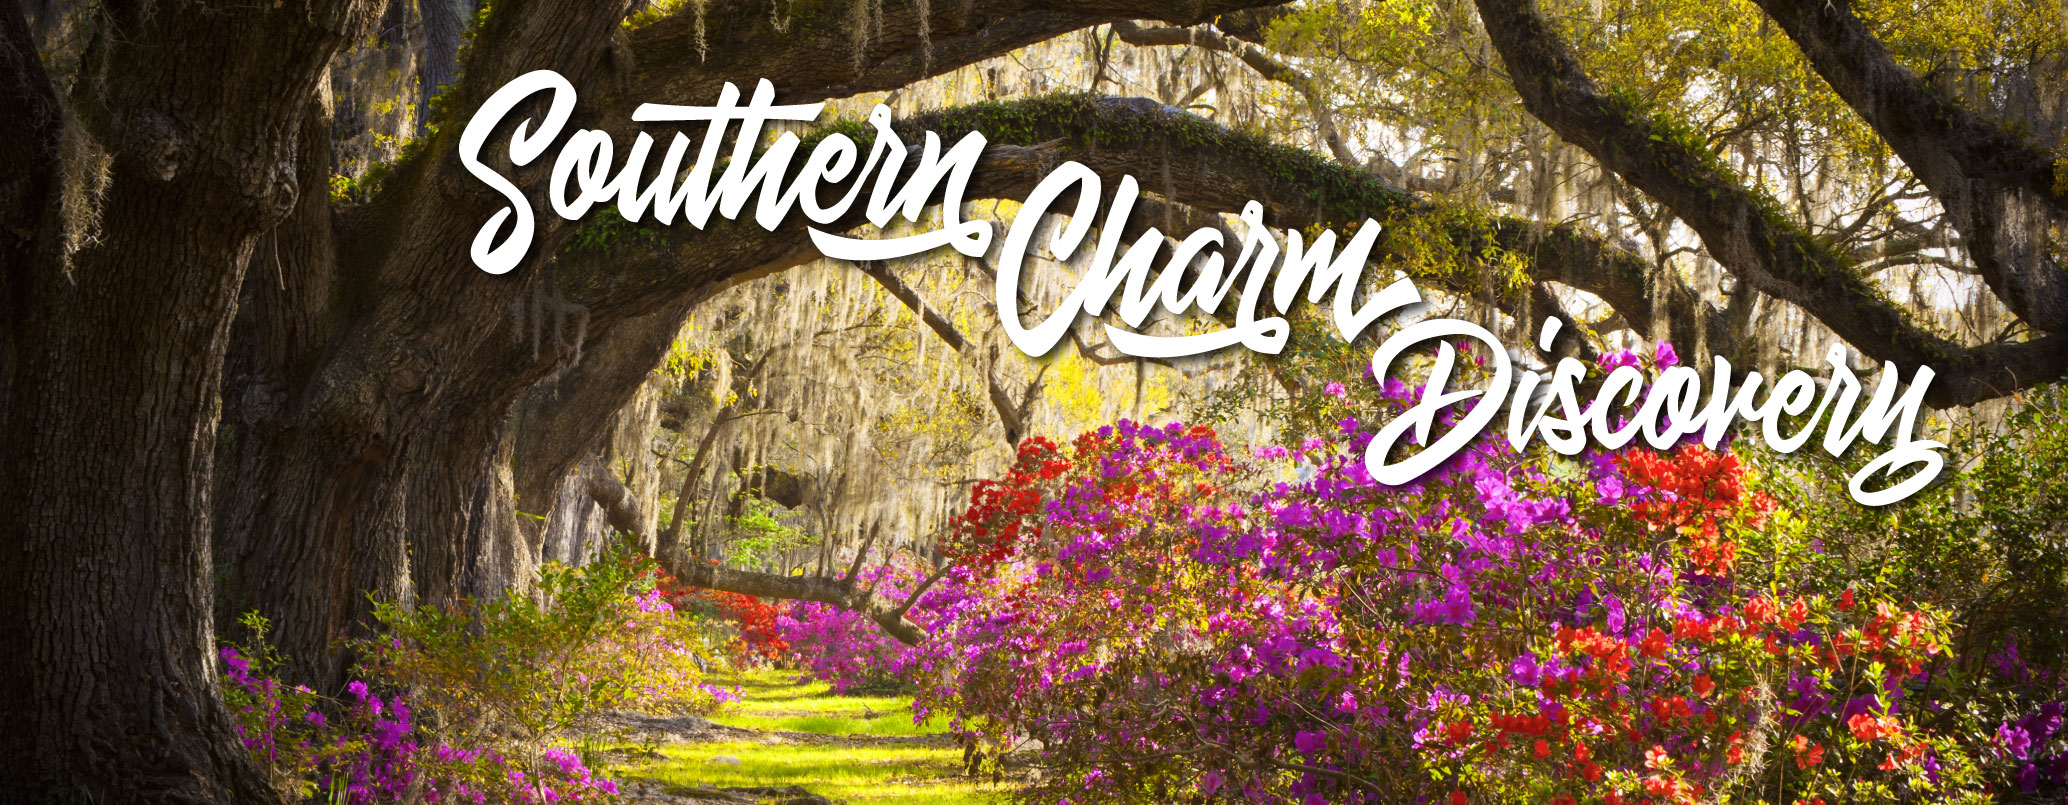 southern-charm-bkgd